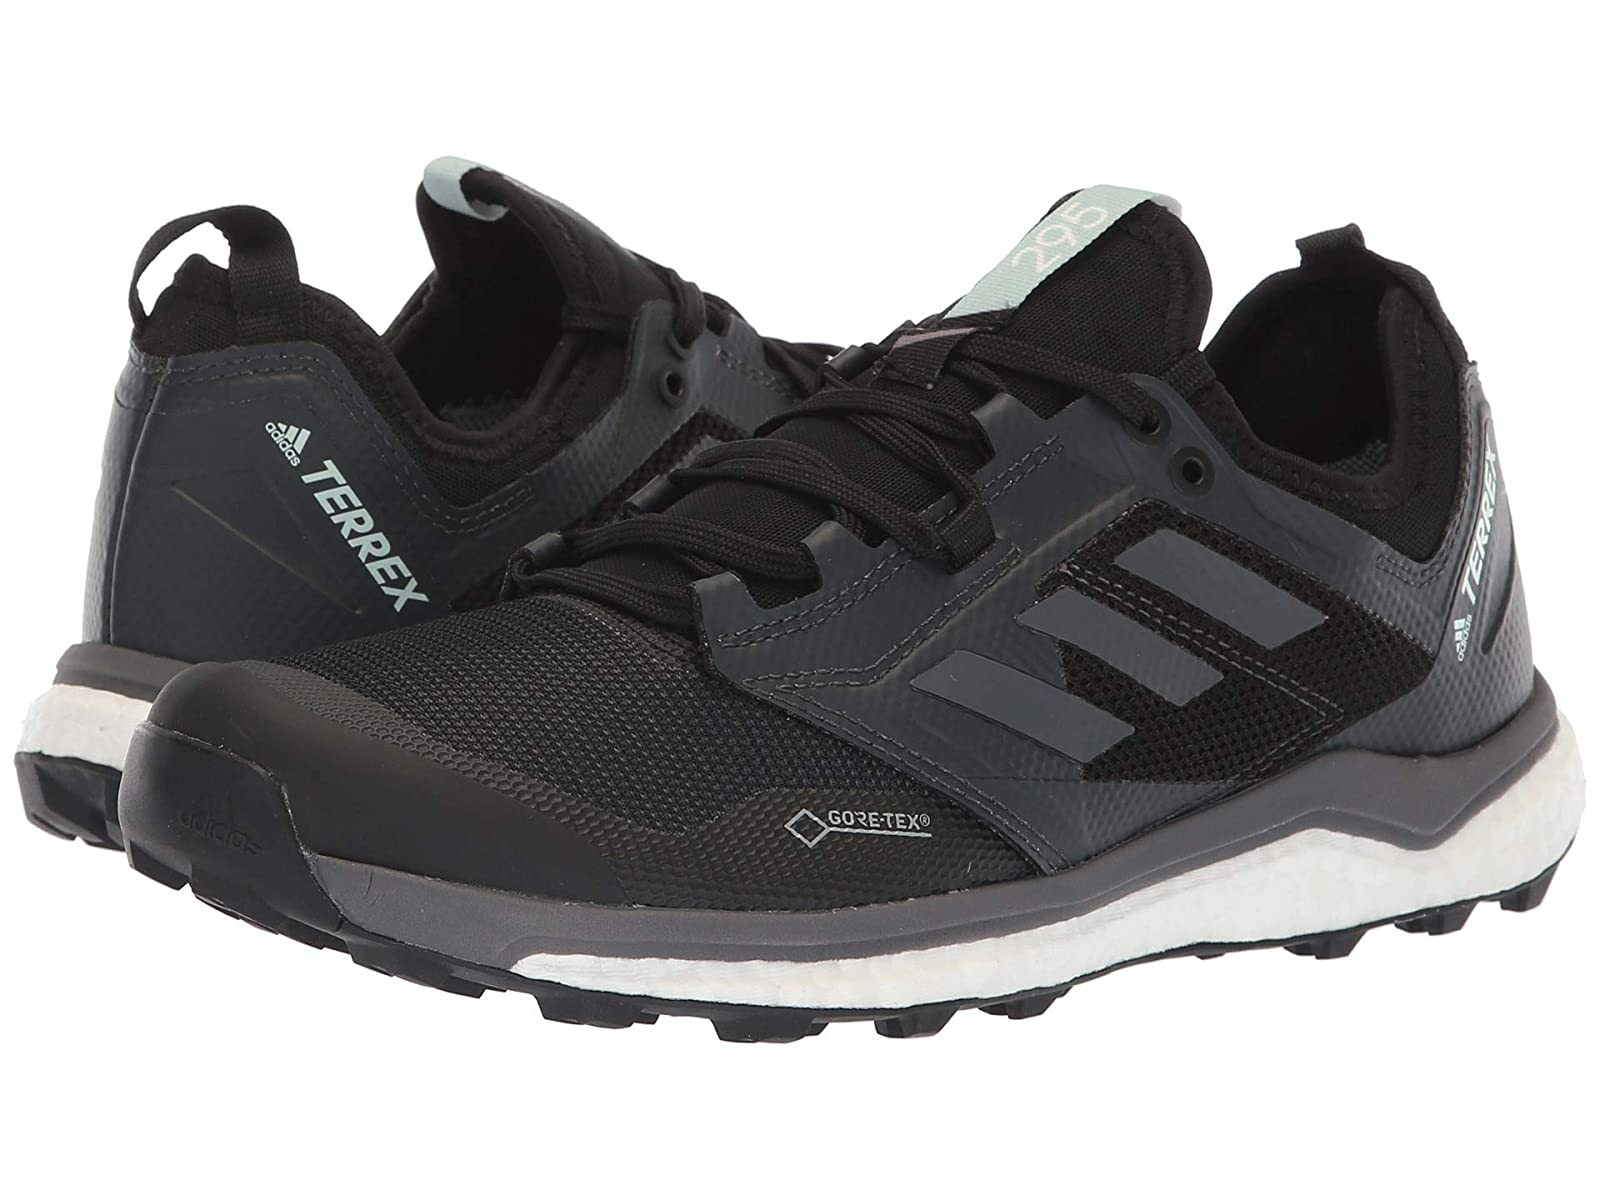 adidas Outdoor price Terrex Agravic XT GTX®-Low price Outdoor daily use-Men's/Women's efe0ea